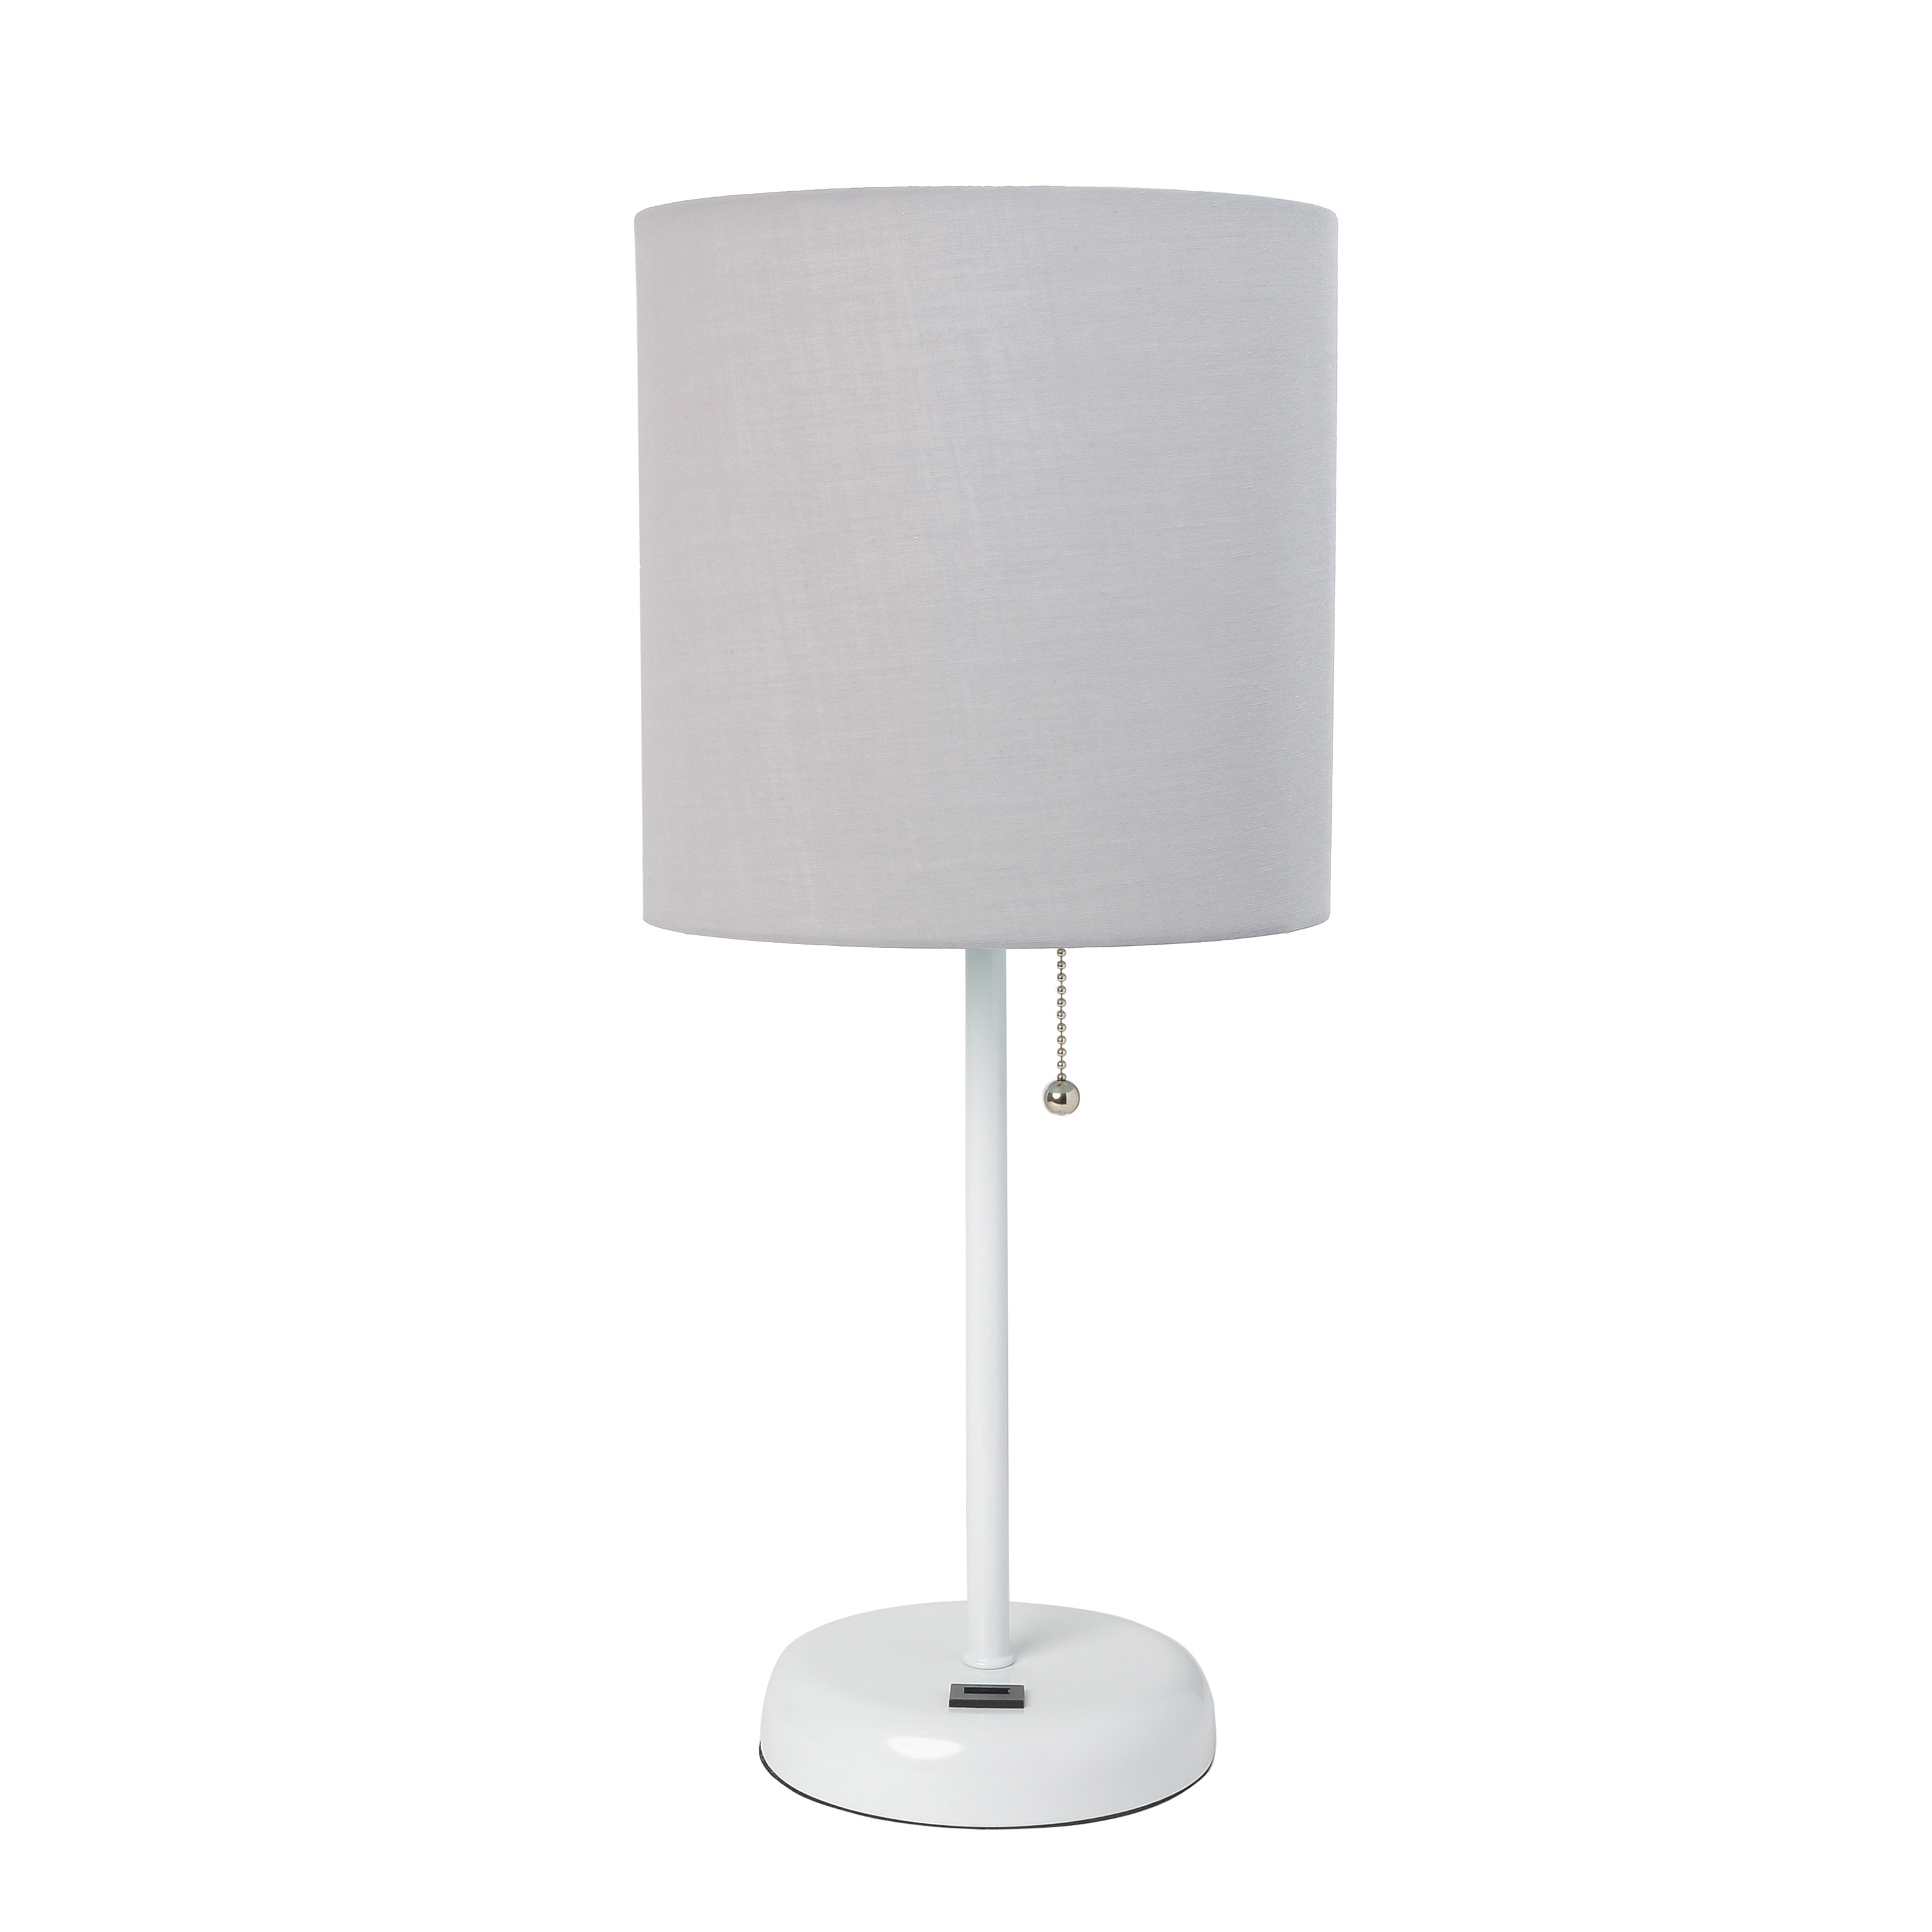 LimeLights White Stick Lamp with USB charging port and Fabric Shade, Gray